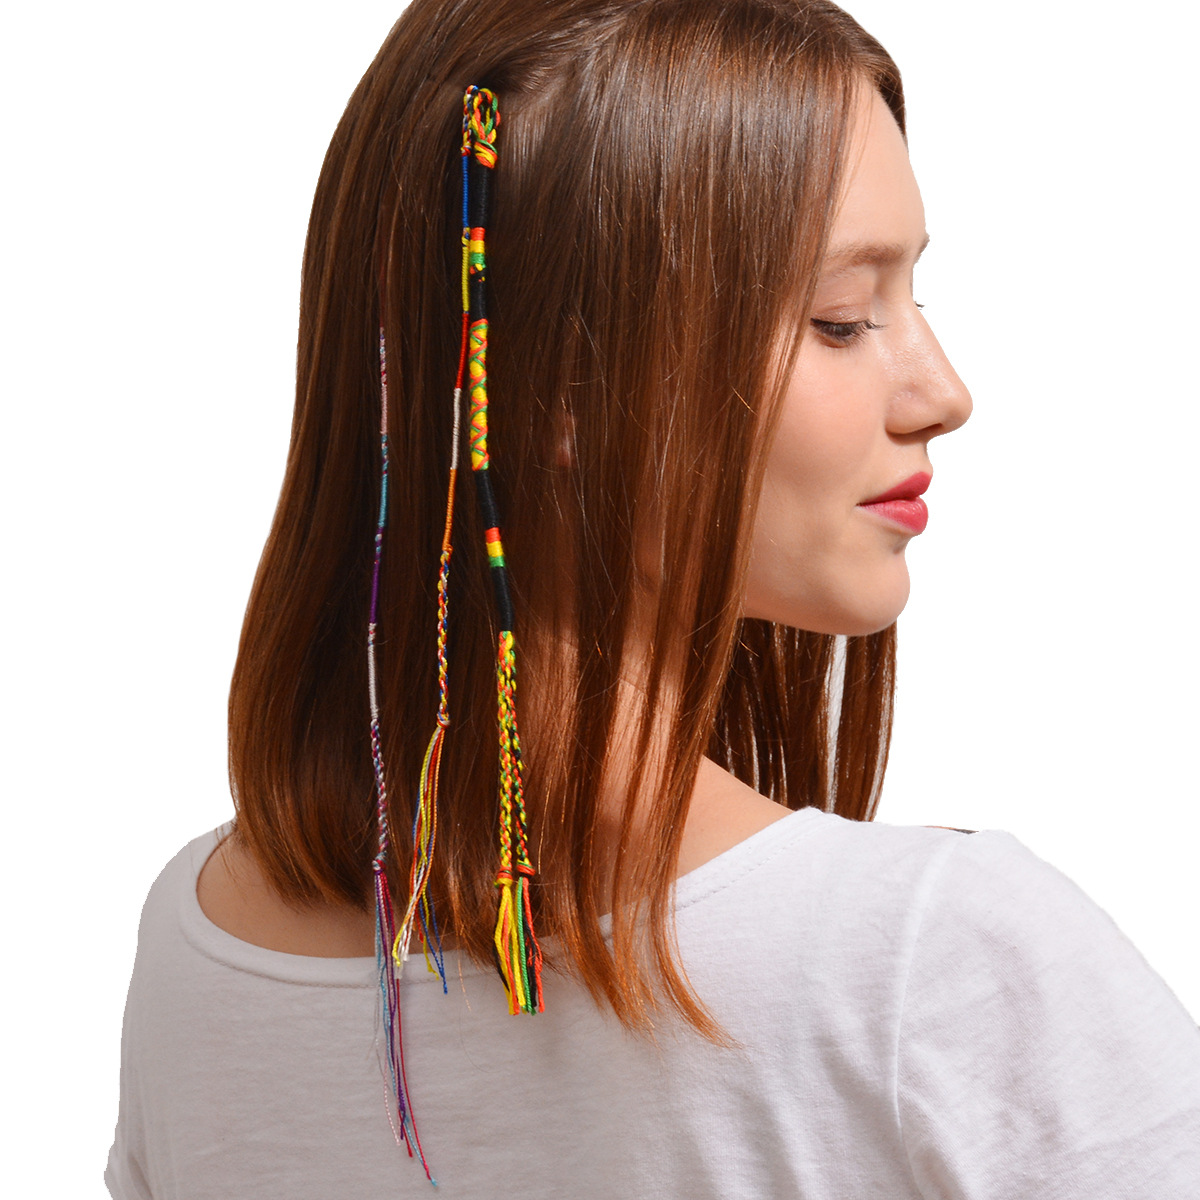 Occident and the United States ClothHair ornaments (A0164 color)NHXR1480-A0164 color